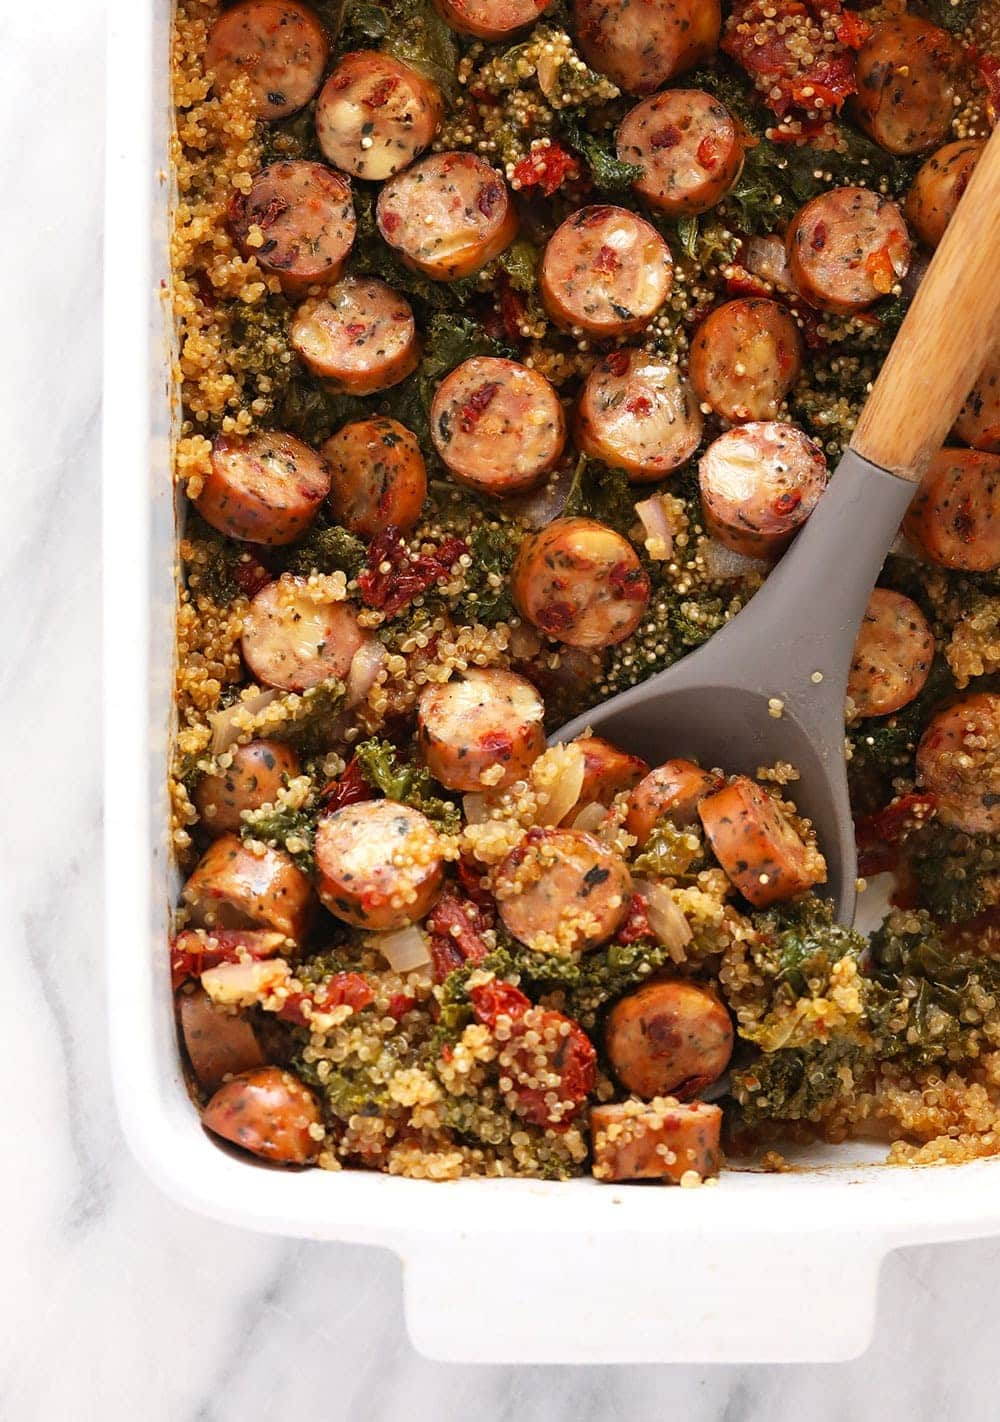 quinoa casserole with large serving spoon